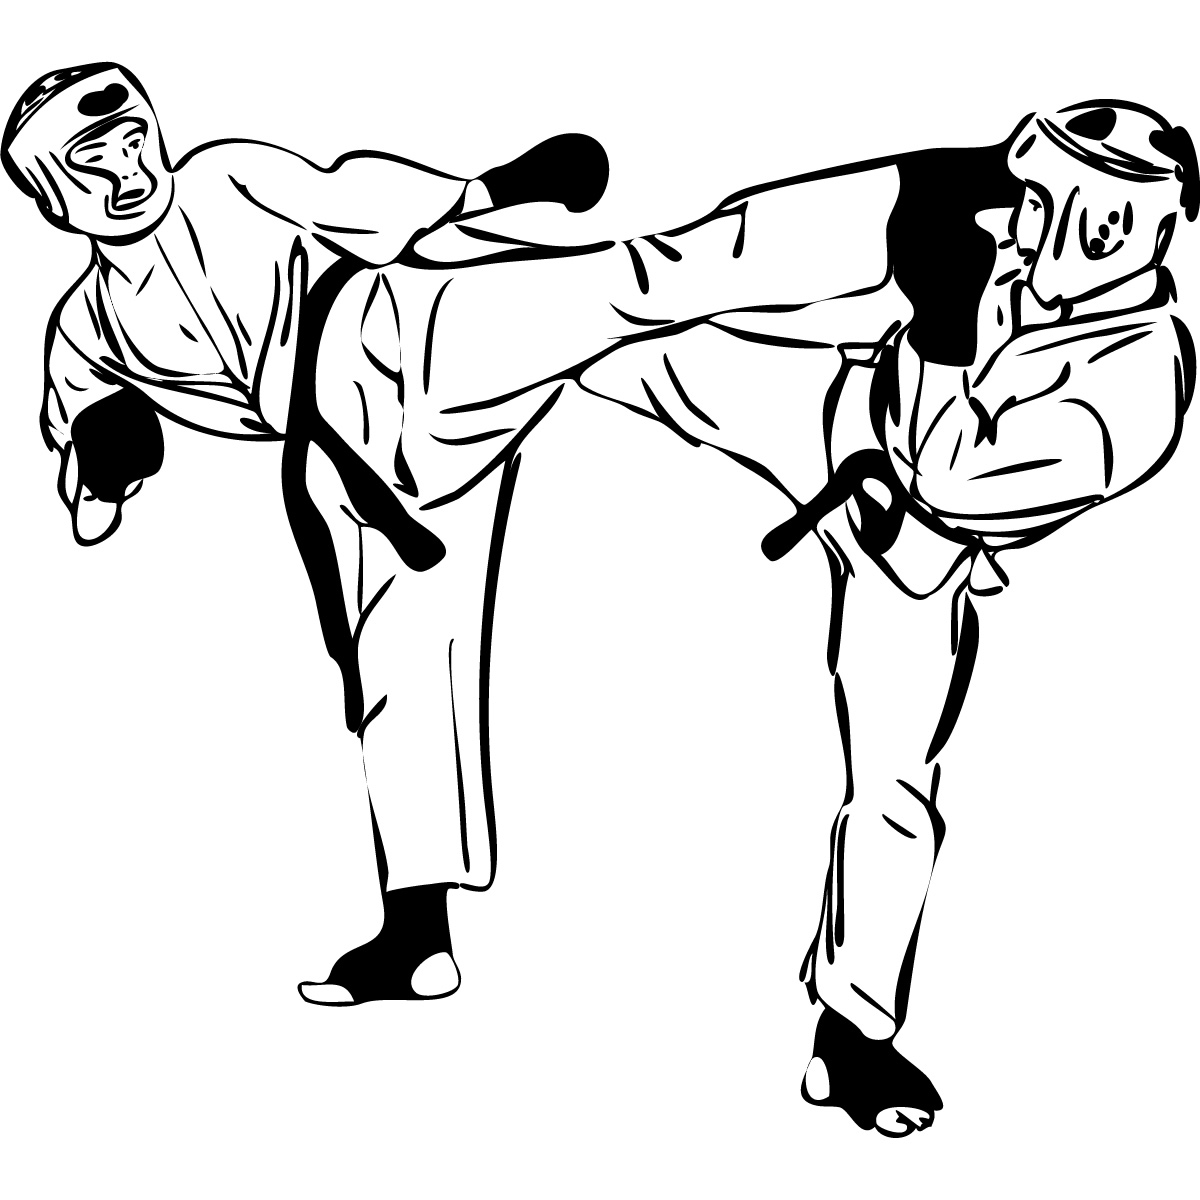 Two Karate Fighters Martial Arts Wall Art Stickers Wall